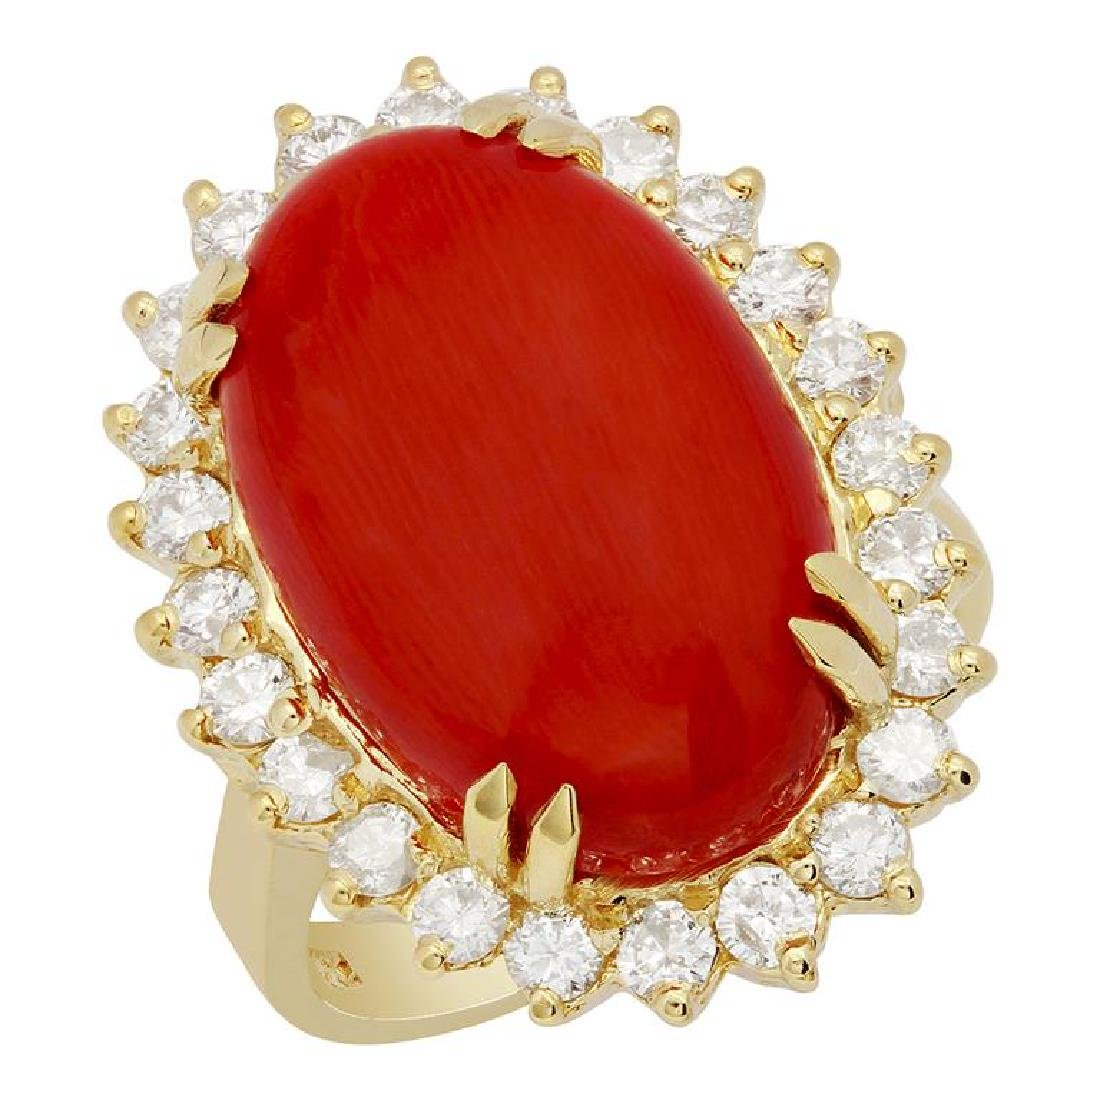 14k Yellow Gold 11.34ct Coral 1.05ct Diamond Ring